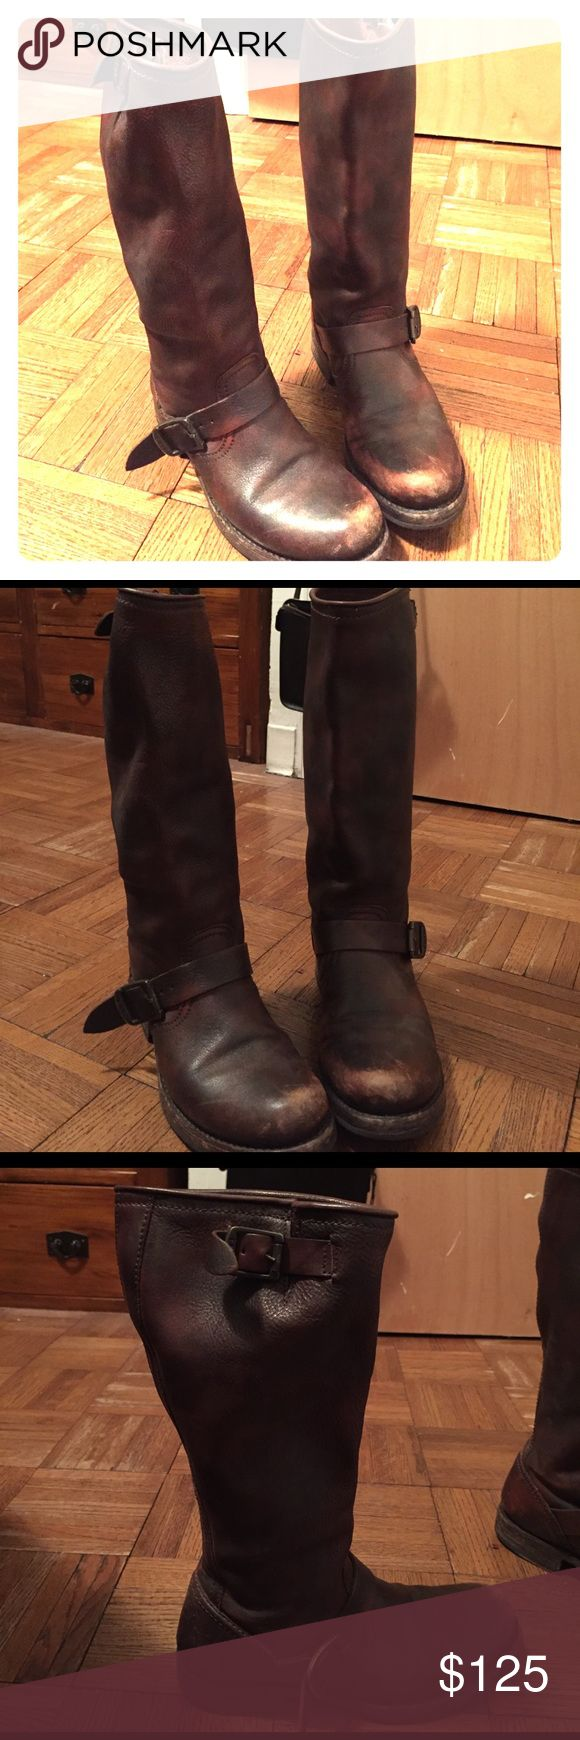 Frye Riding boots Distressed leather Frye riding boots - mid-calf with buckle with almost an inch heel Frye Shoes Heeled Boots